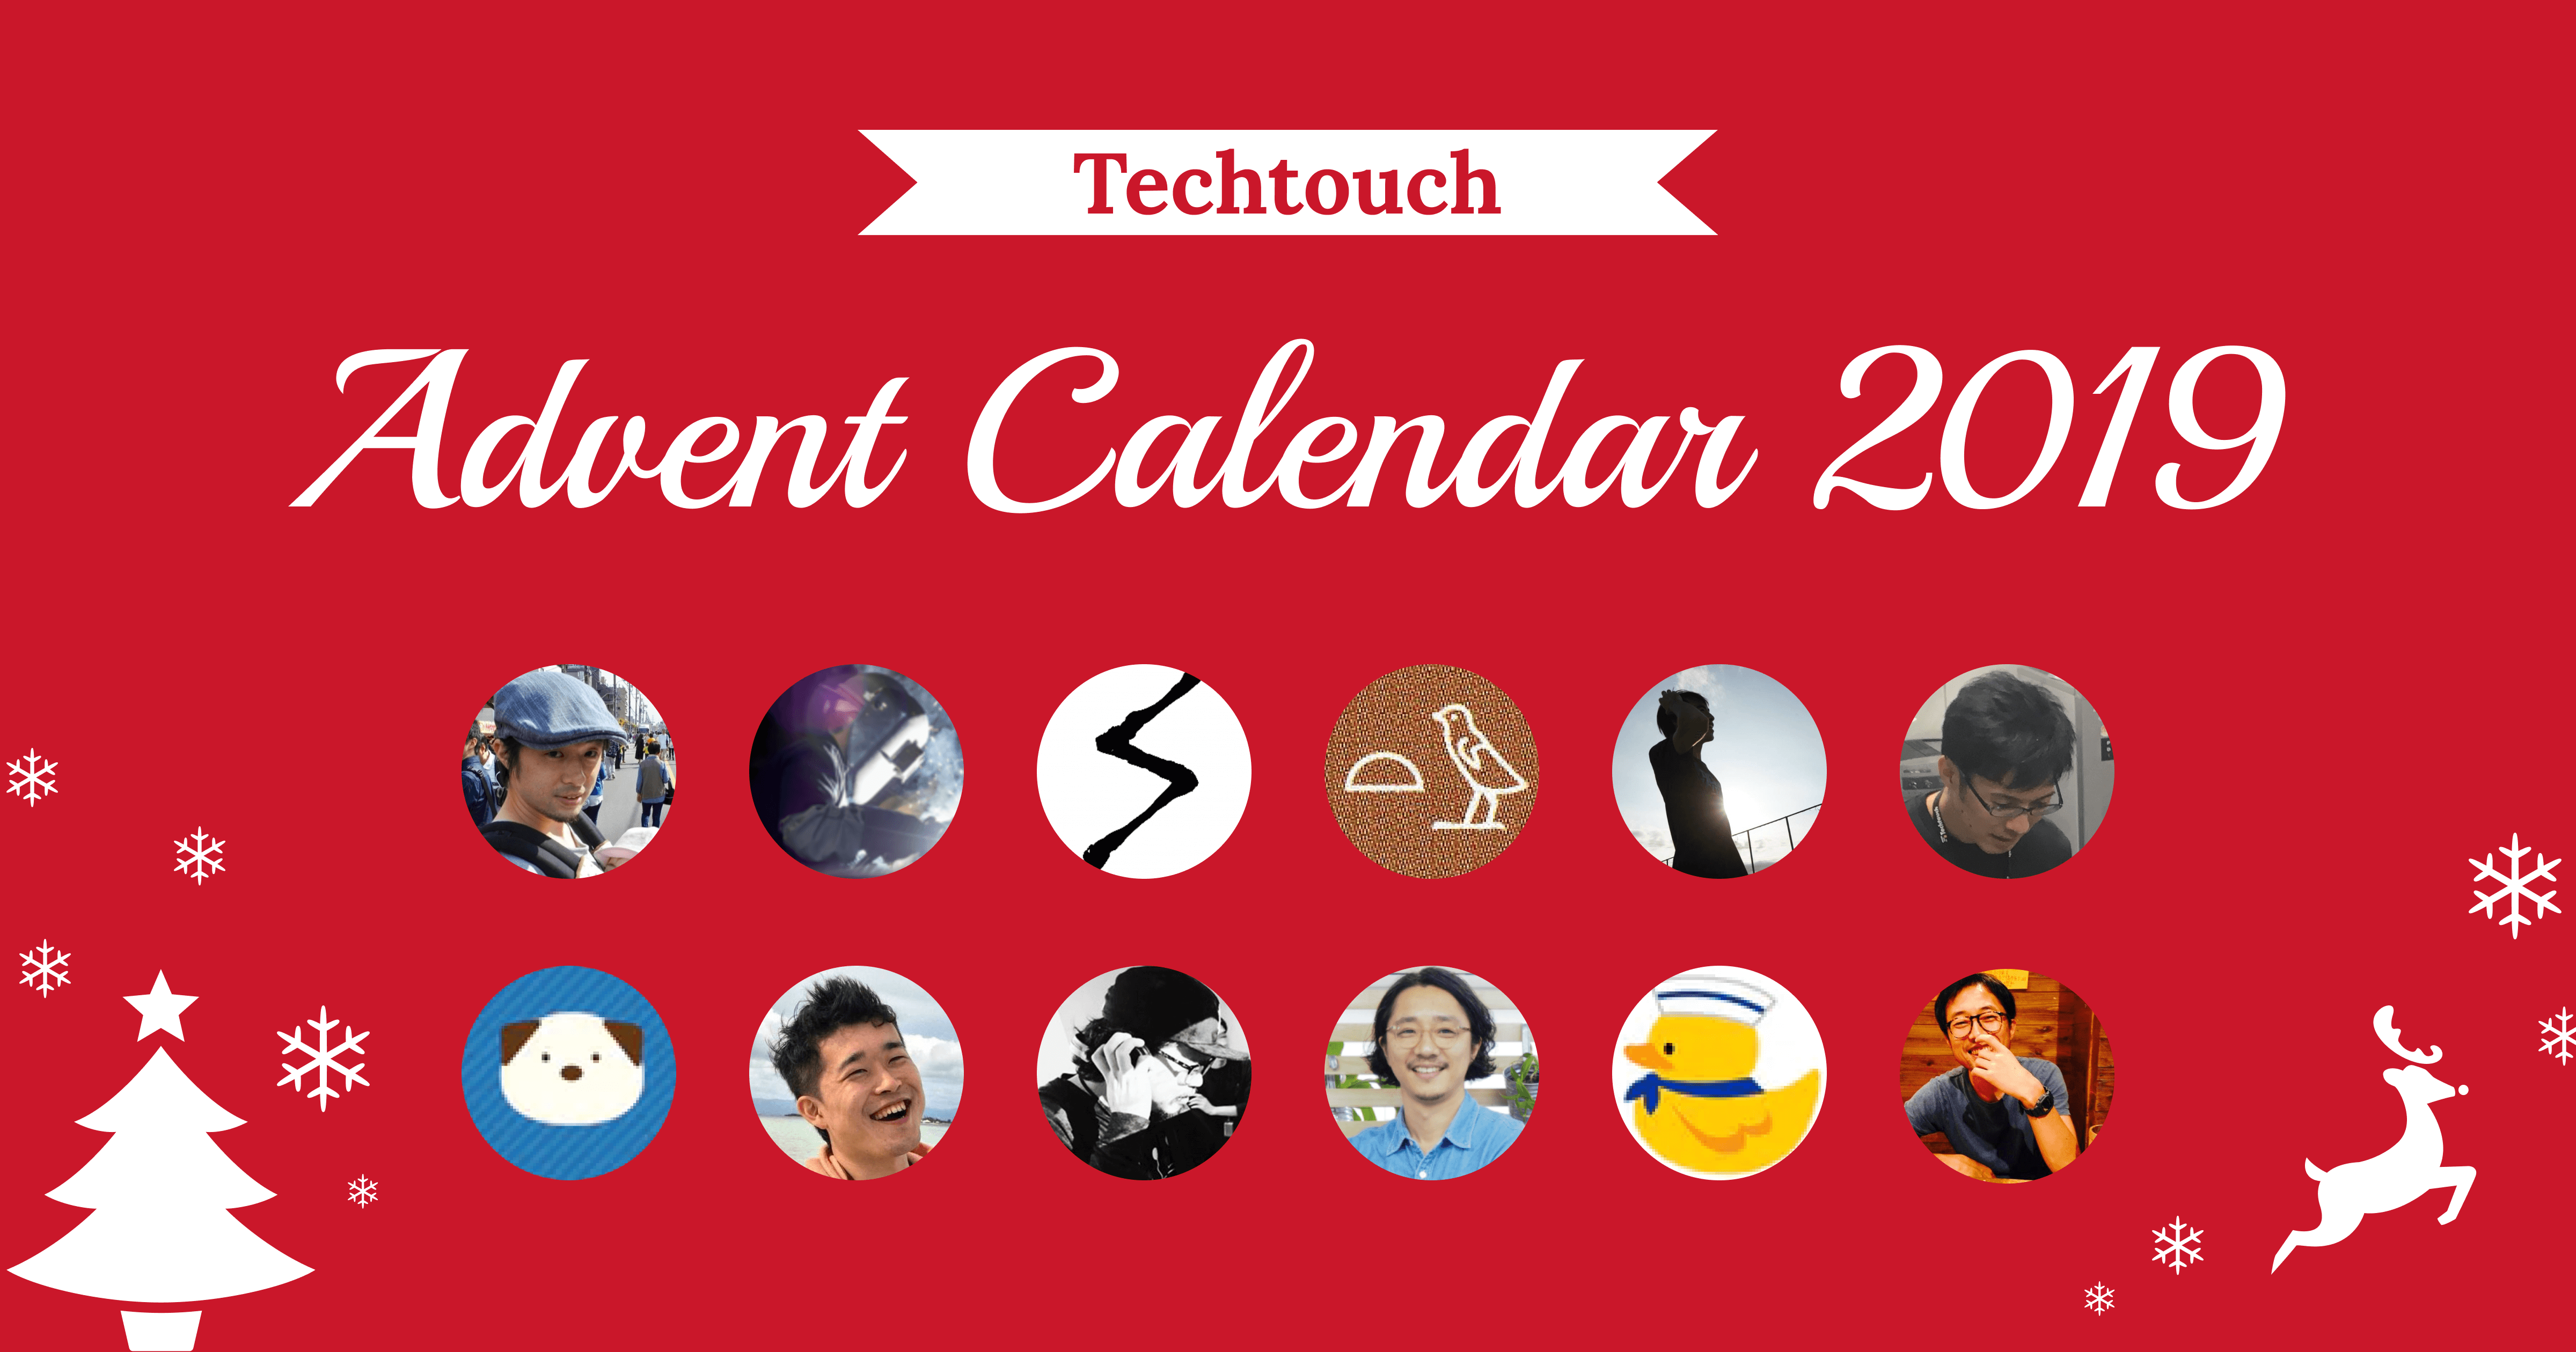 techtouch-advent-calendar